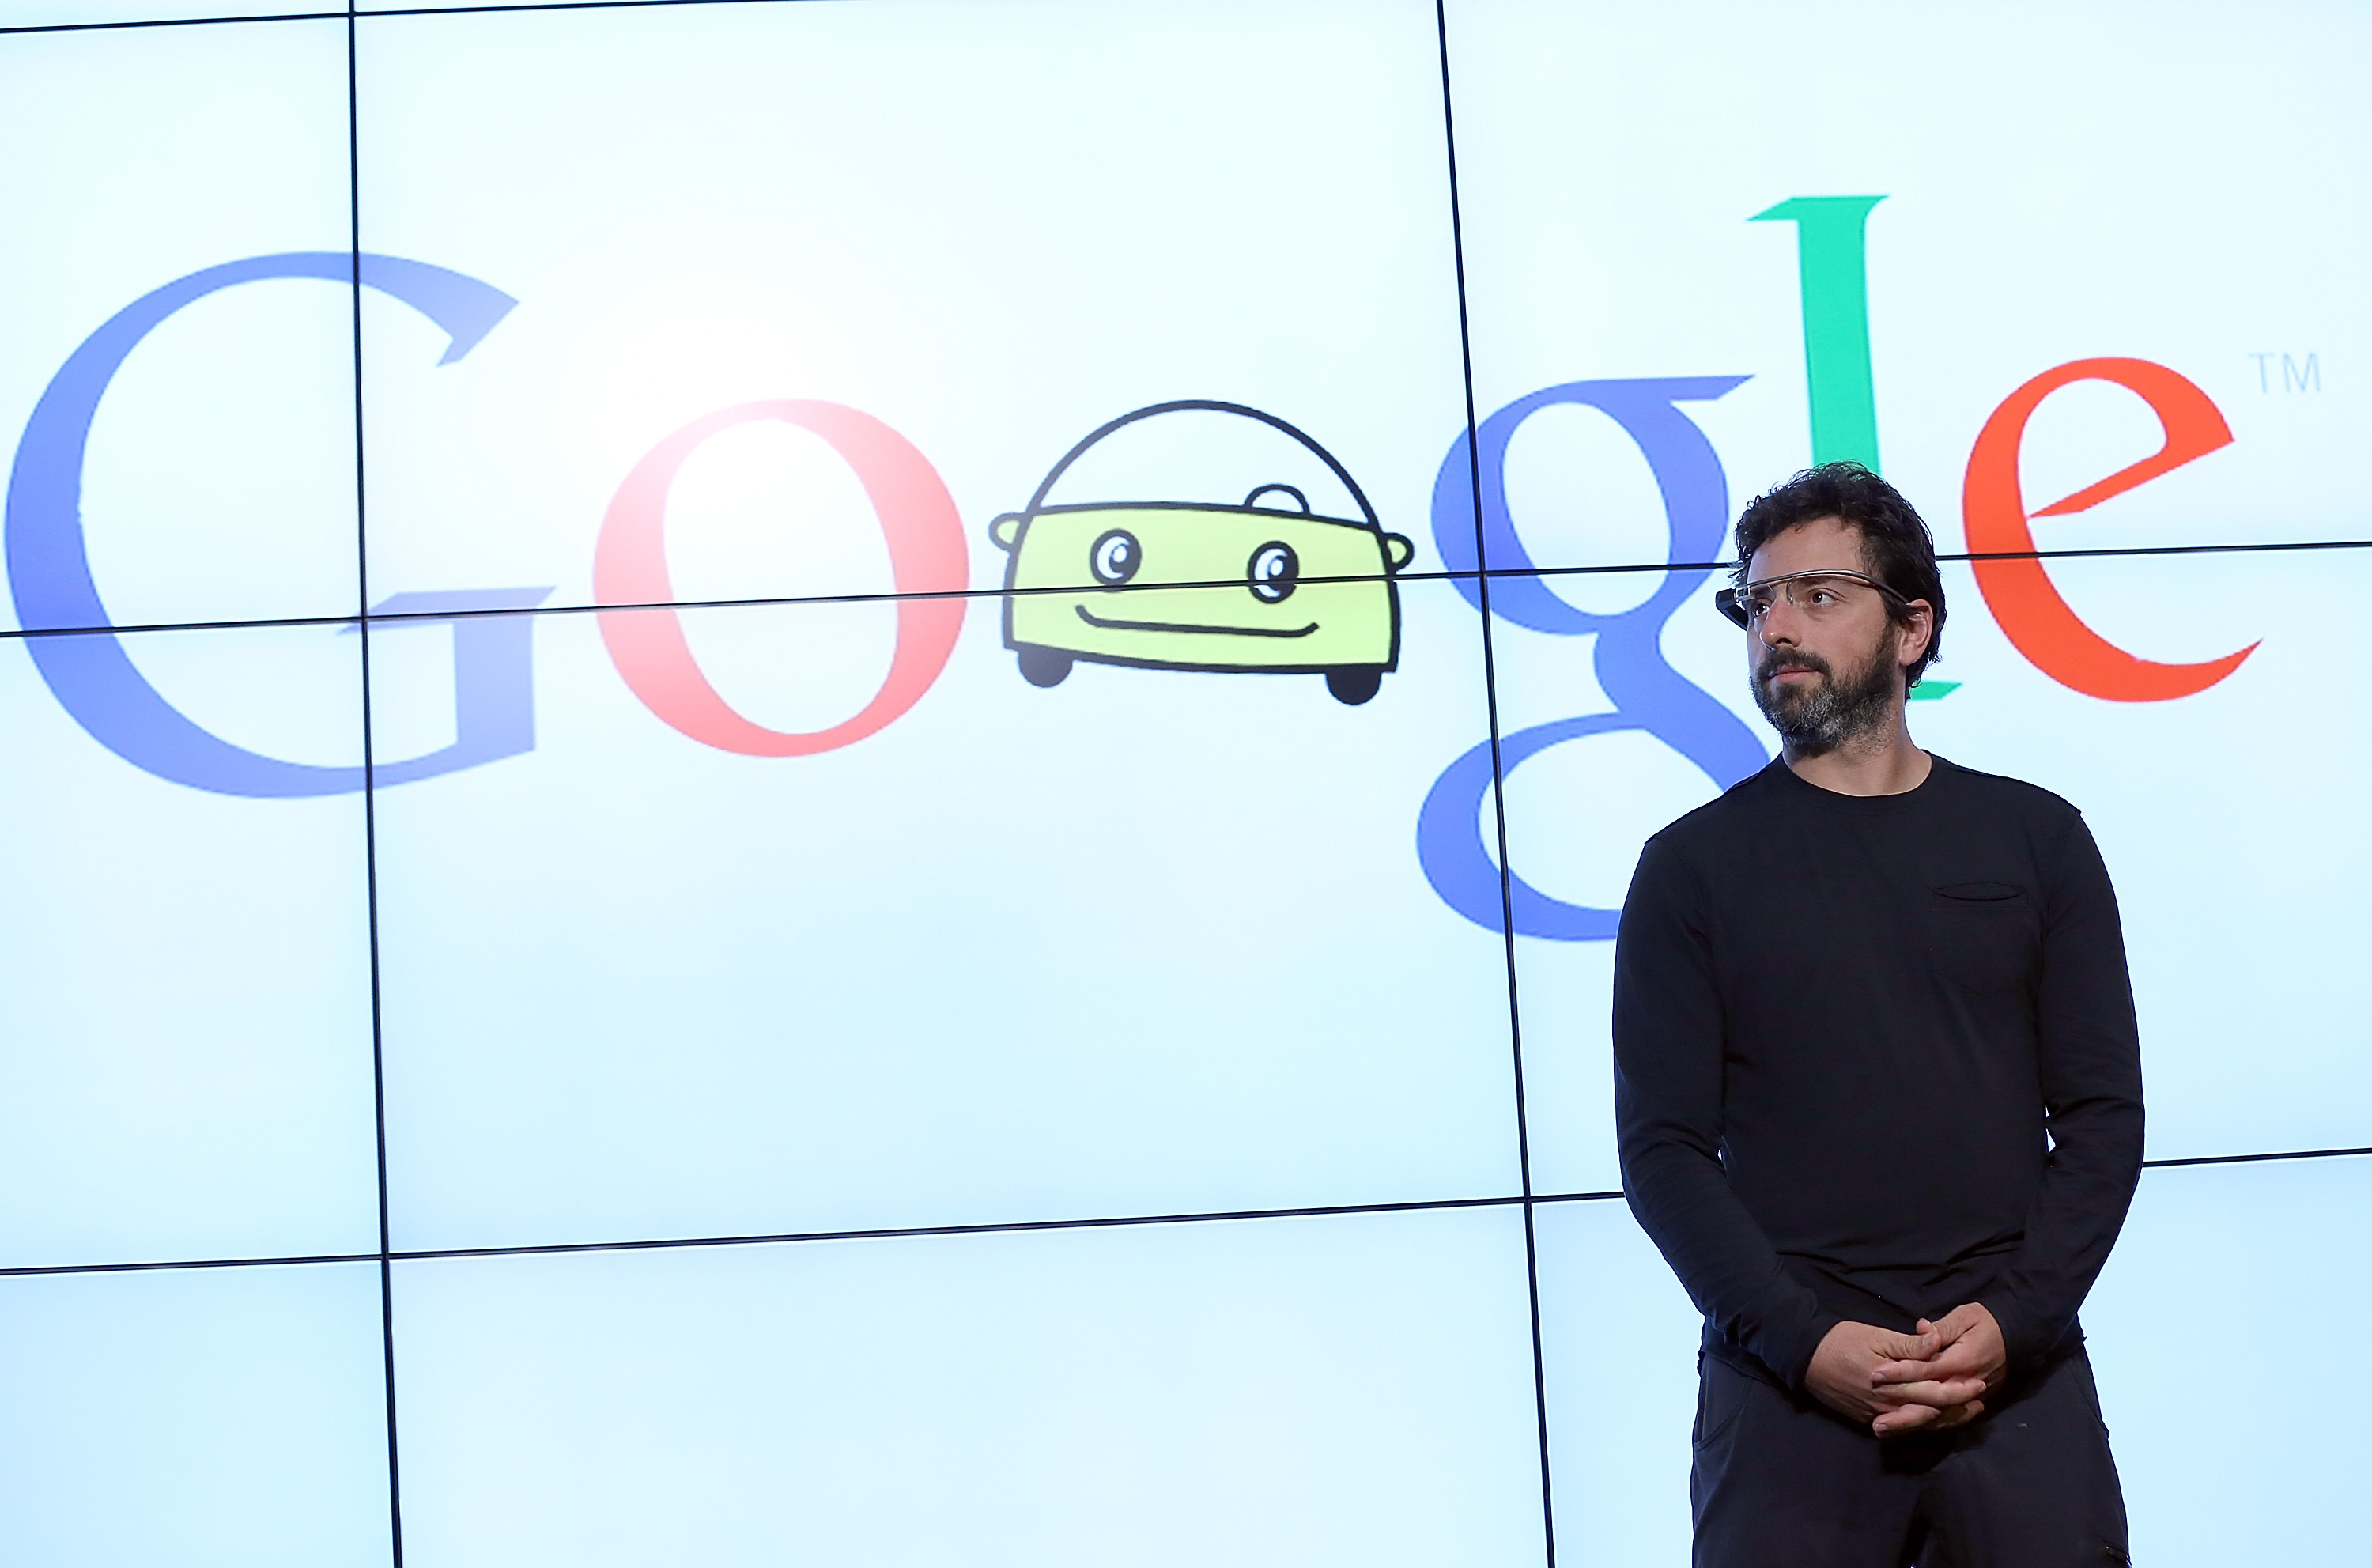 Google co-founder Sergey Brin speaks about driverless cars in September 2012 at Google headquarters.